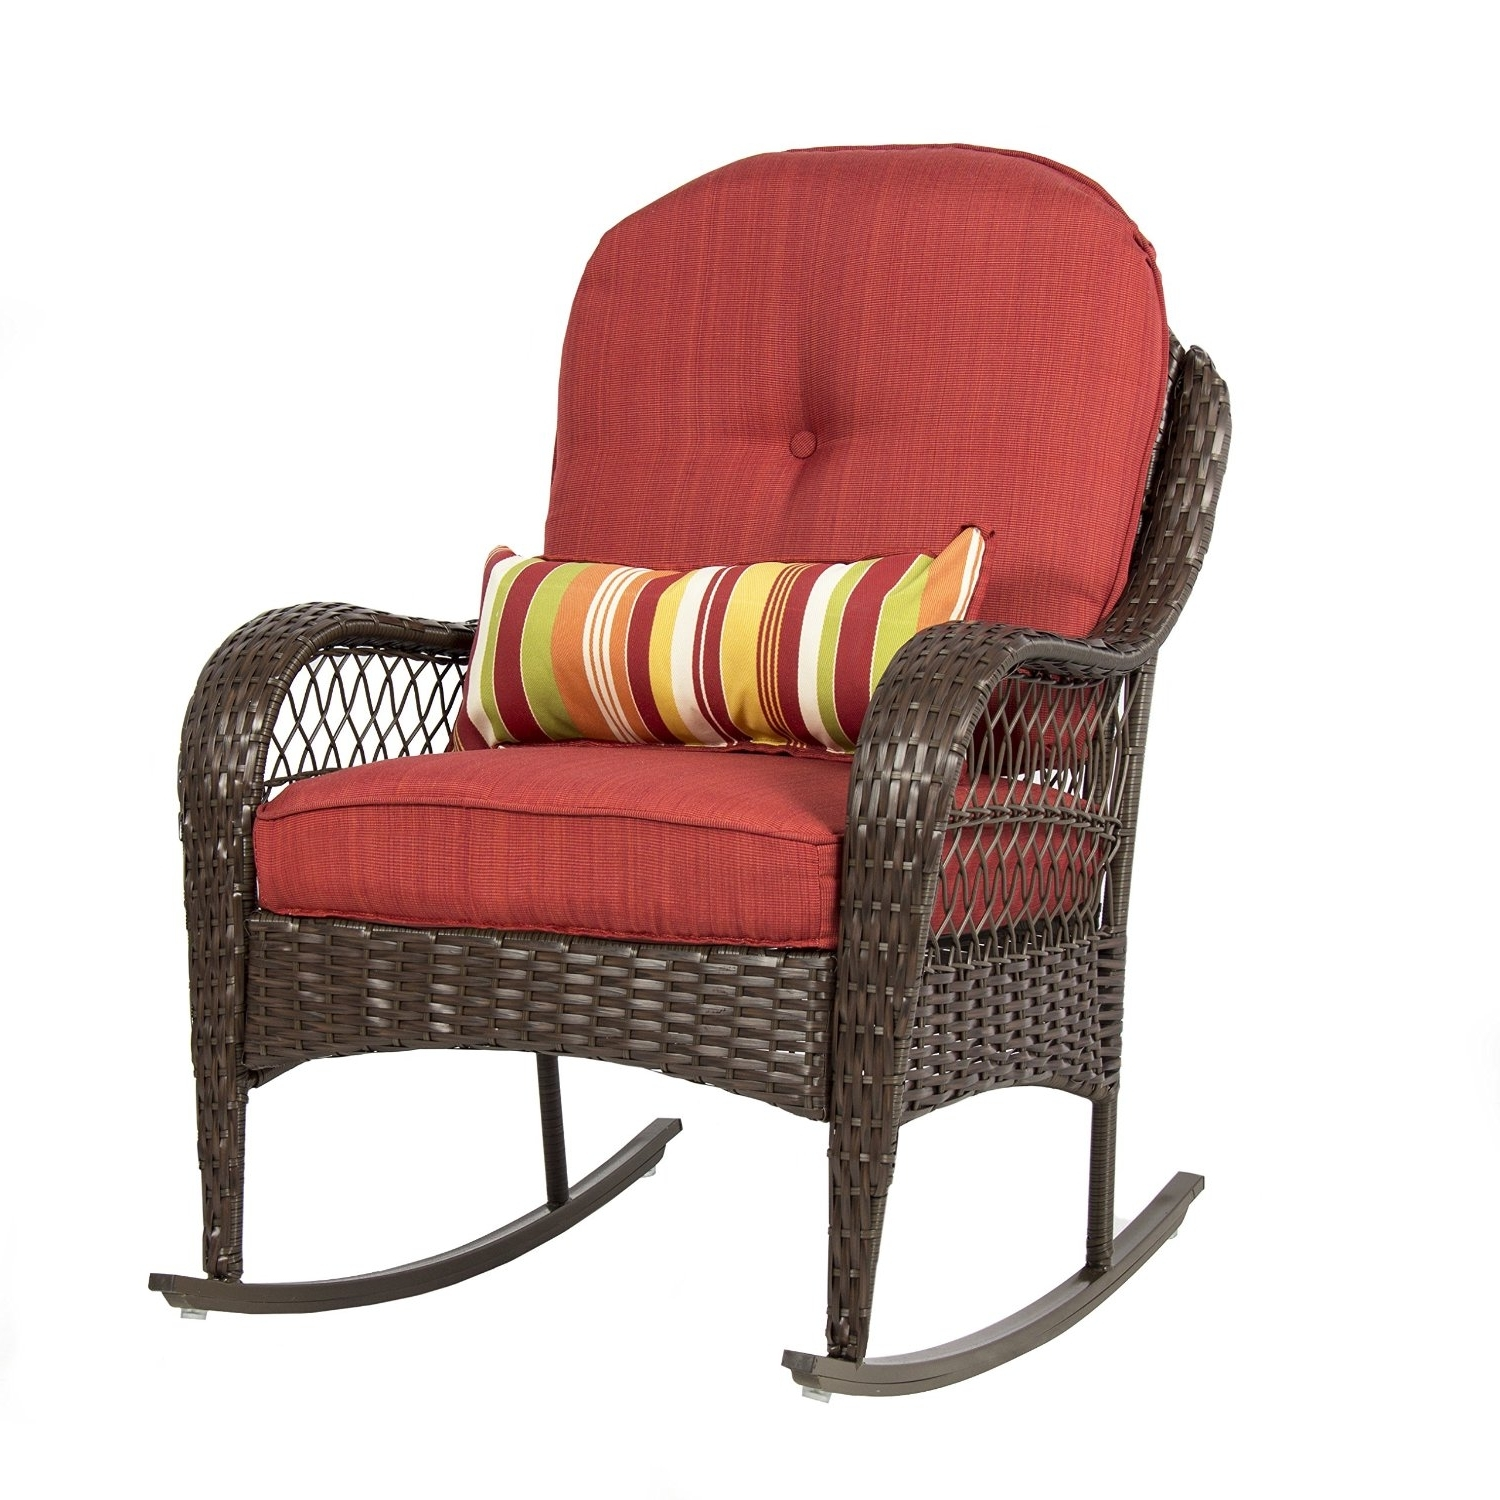 Kevinjohnsonformayor – Page 9 – Rocking Chair Reborn Pertaining To Fashionable Padded Patio Rocking Chairs (View 8 of 15)